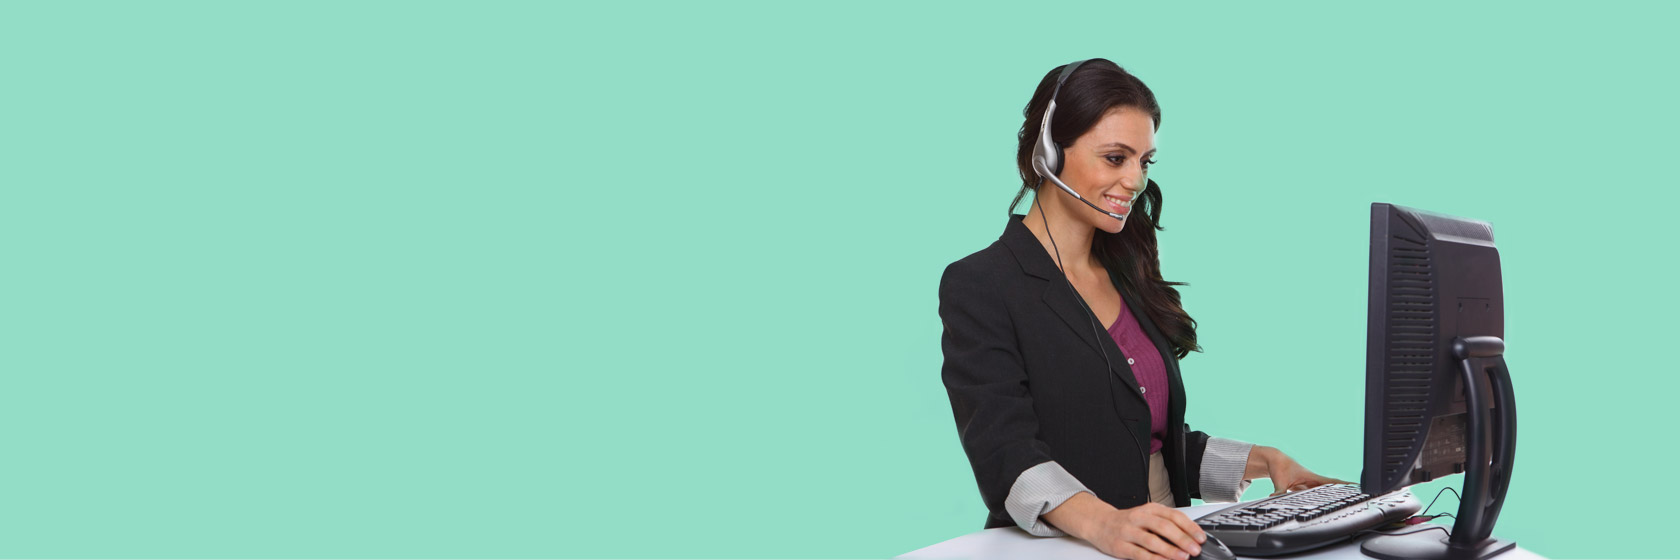 Call agent smiling on computer